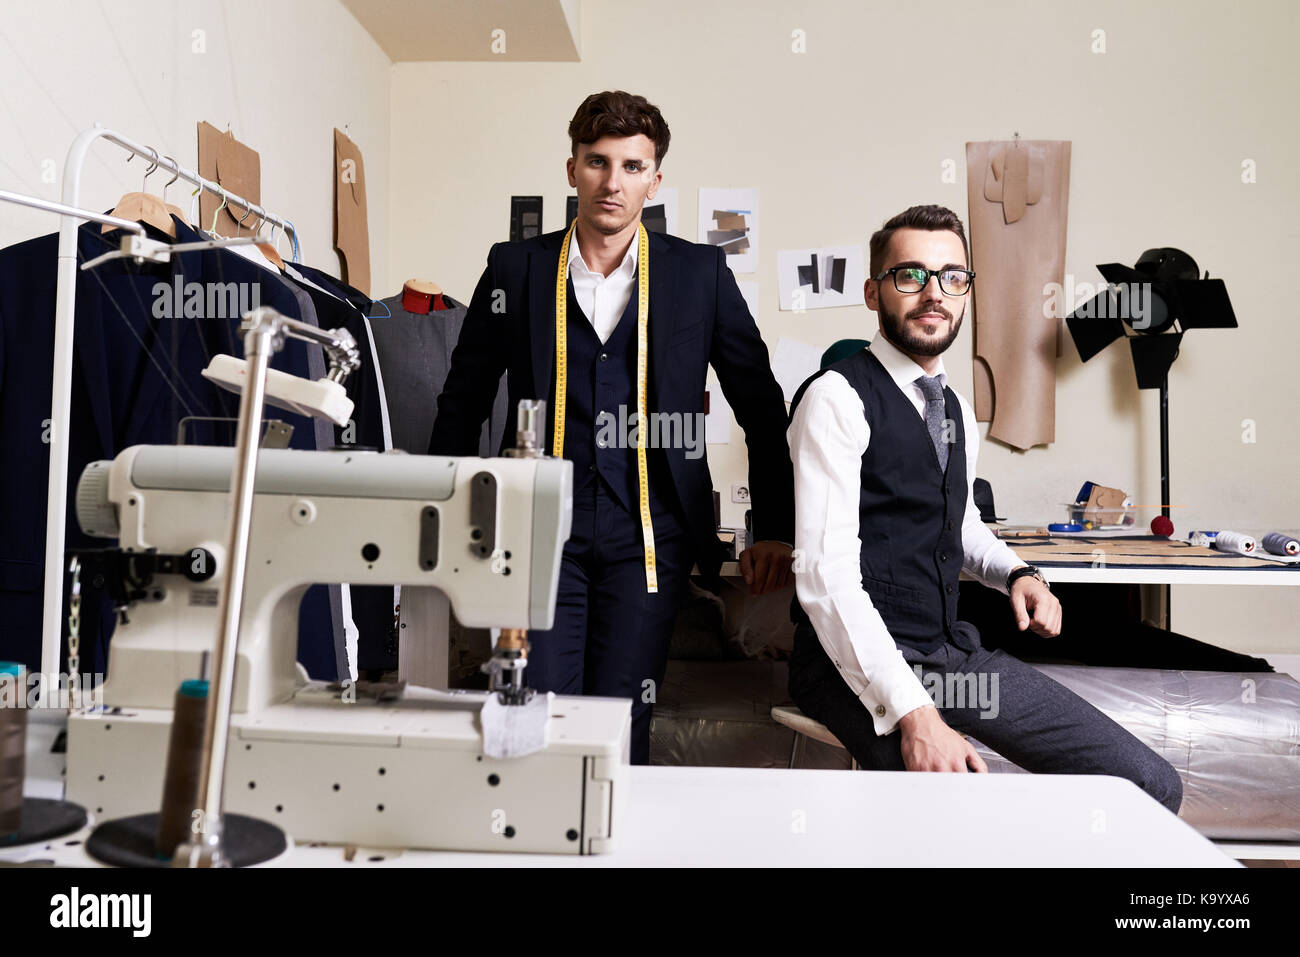 Group Portrait Of Handsome Young Fashion Designers Looking At Camera Stock Photo Alamy